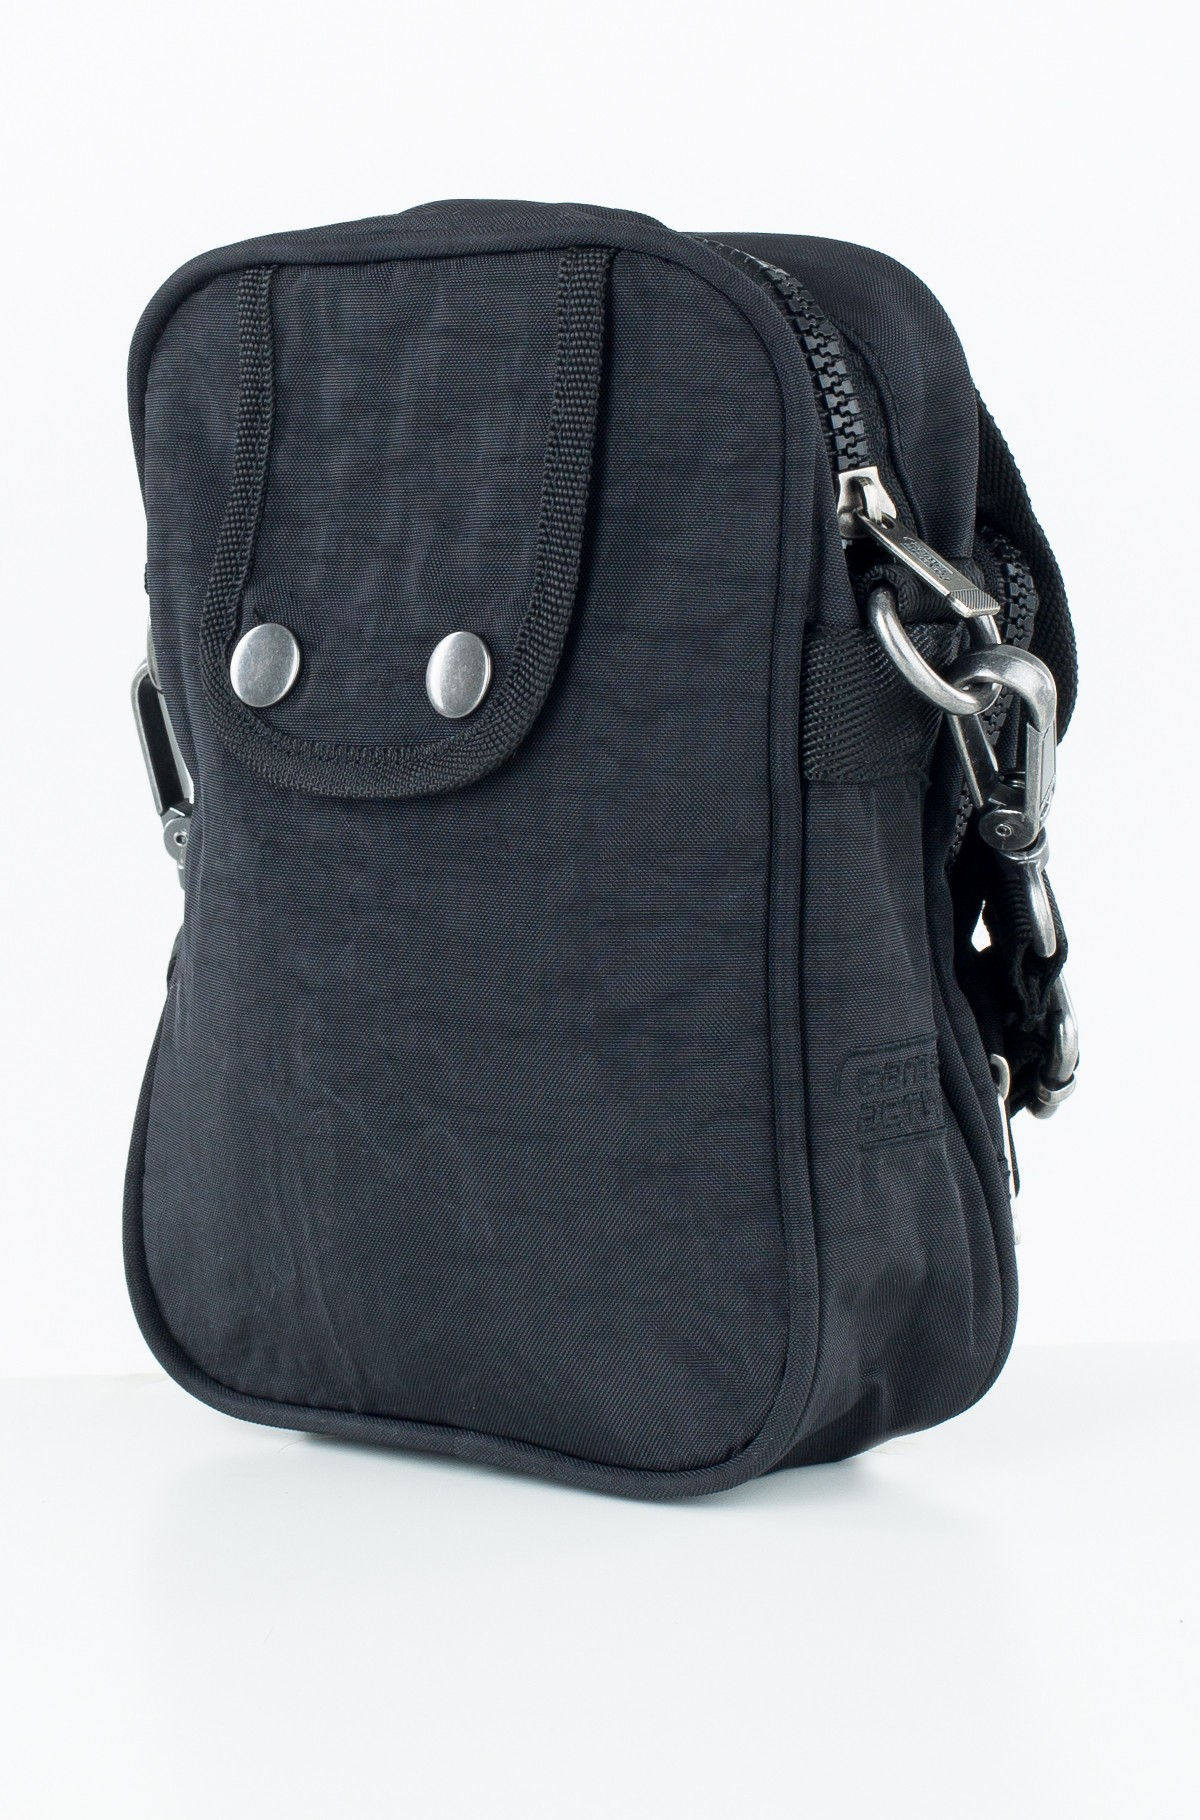 Shoulder bag B00/913-full-2